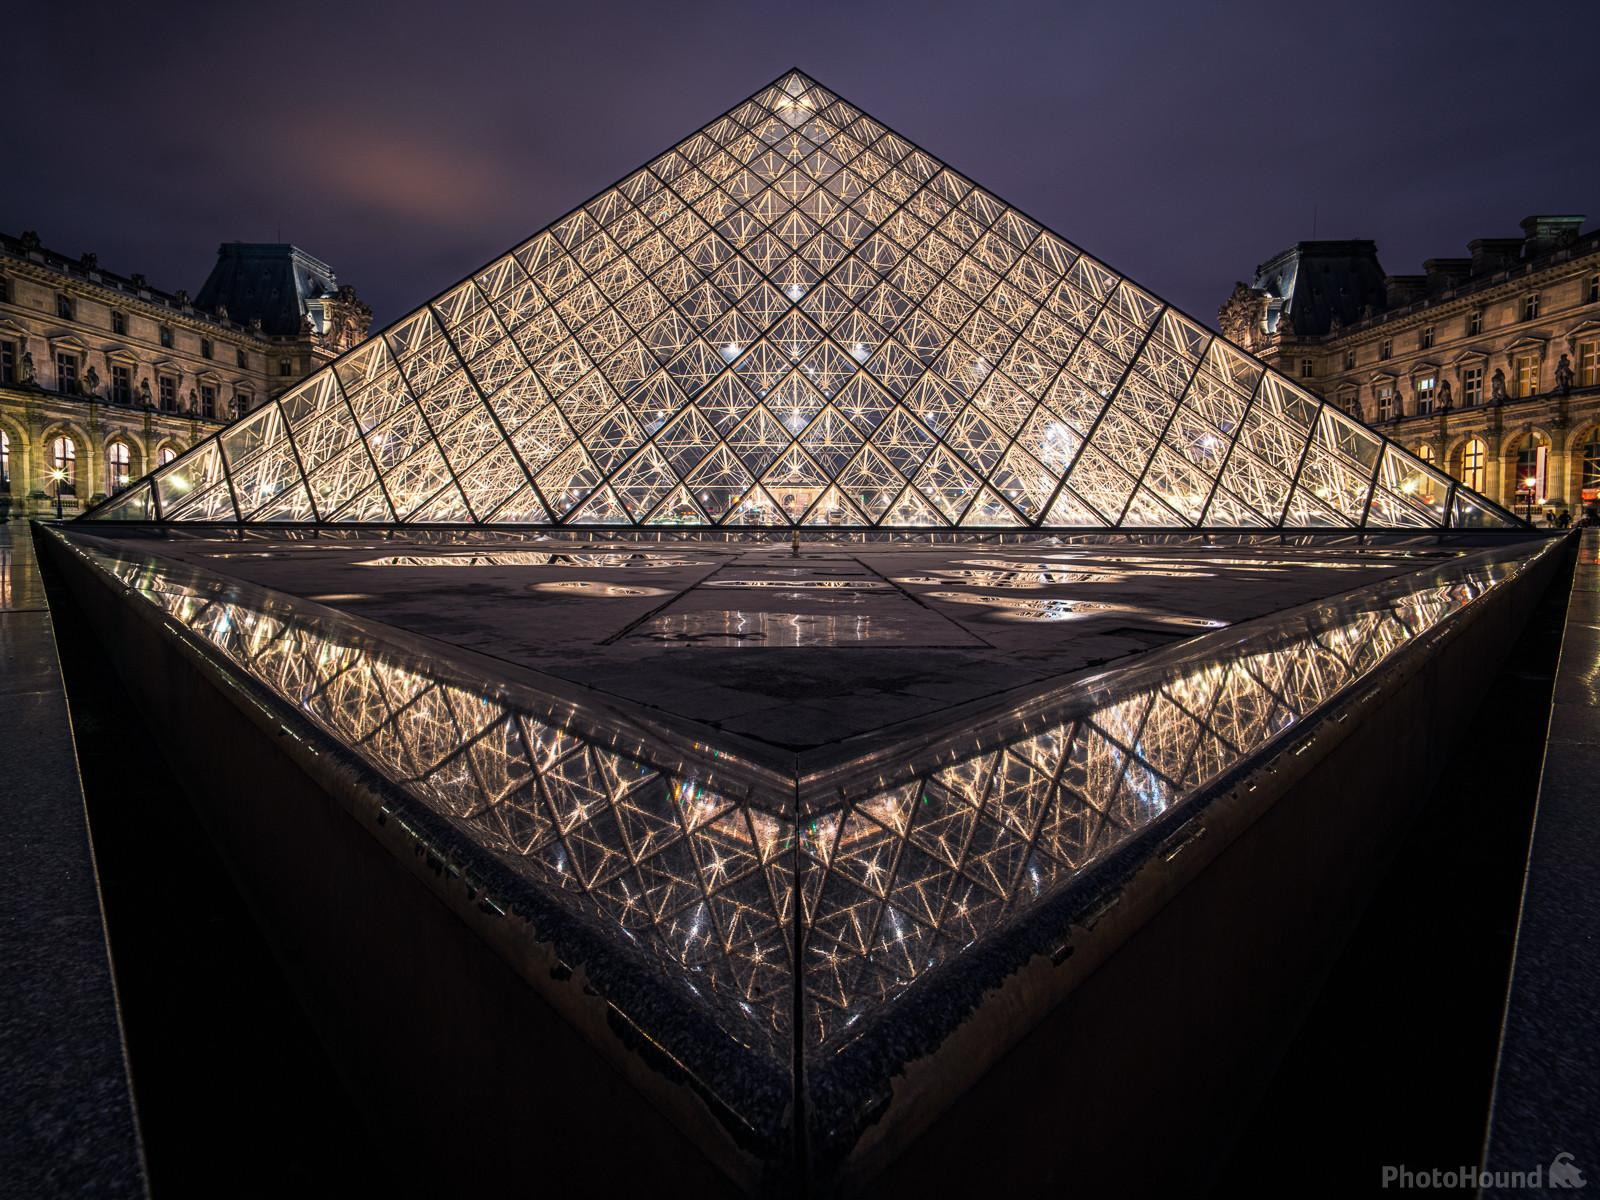 Pyramide at night, viewed from the eastern side.